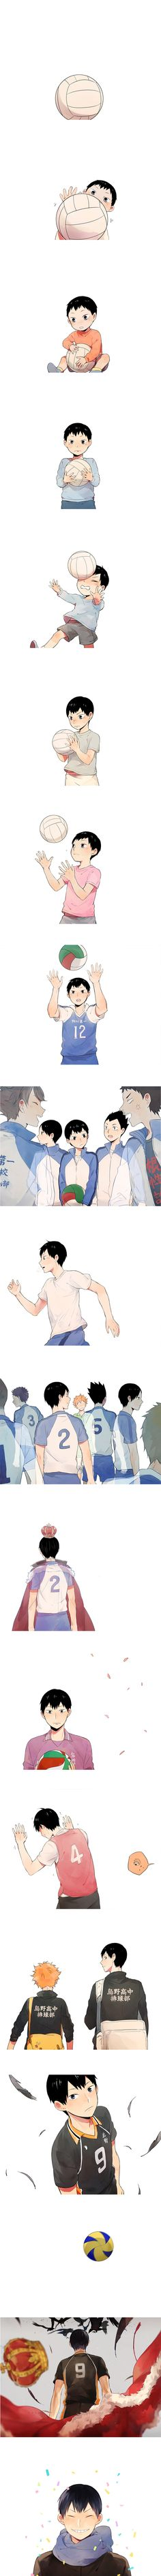 Tobio Kageyama | Haikyuu!! | Omg this is so cute